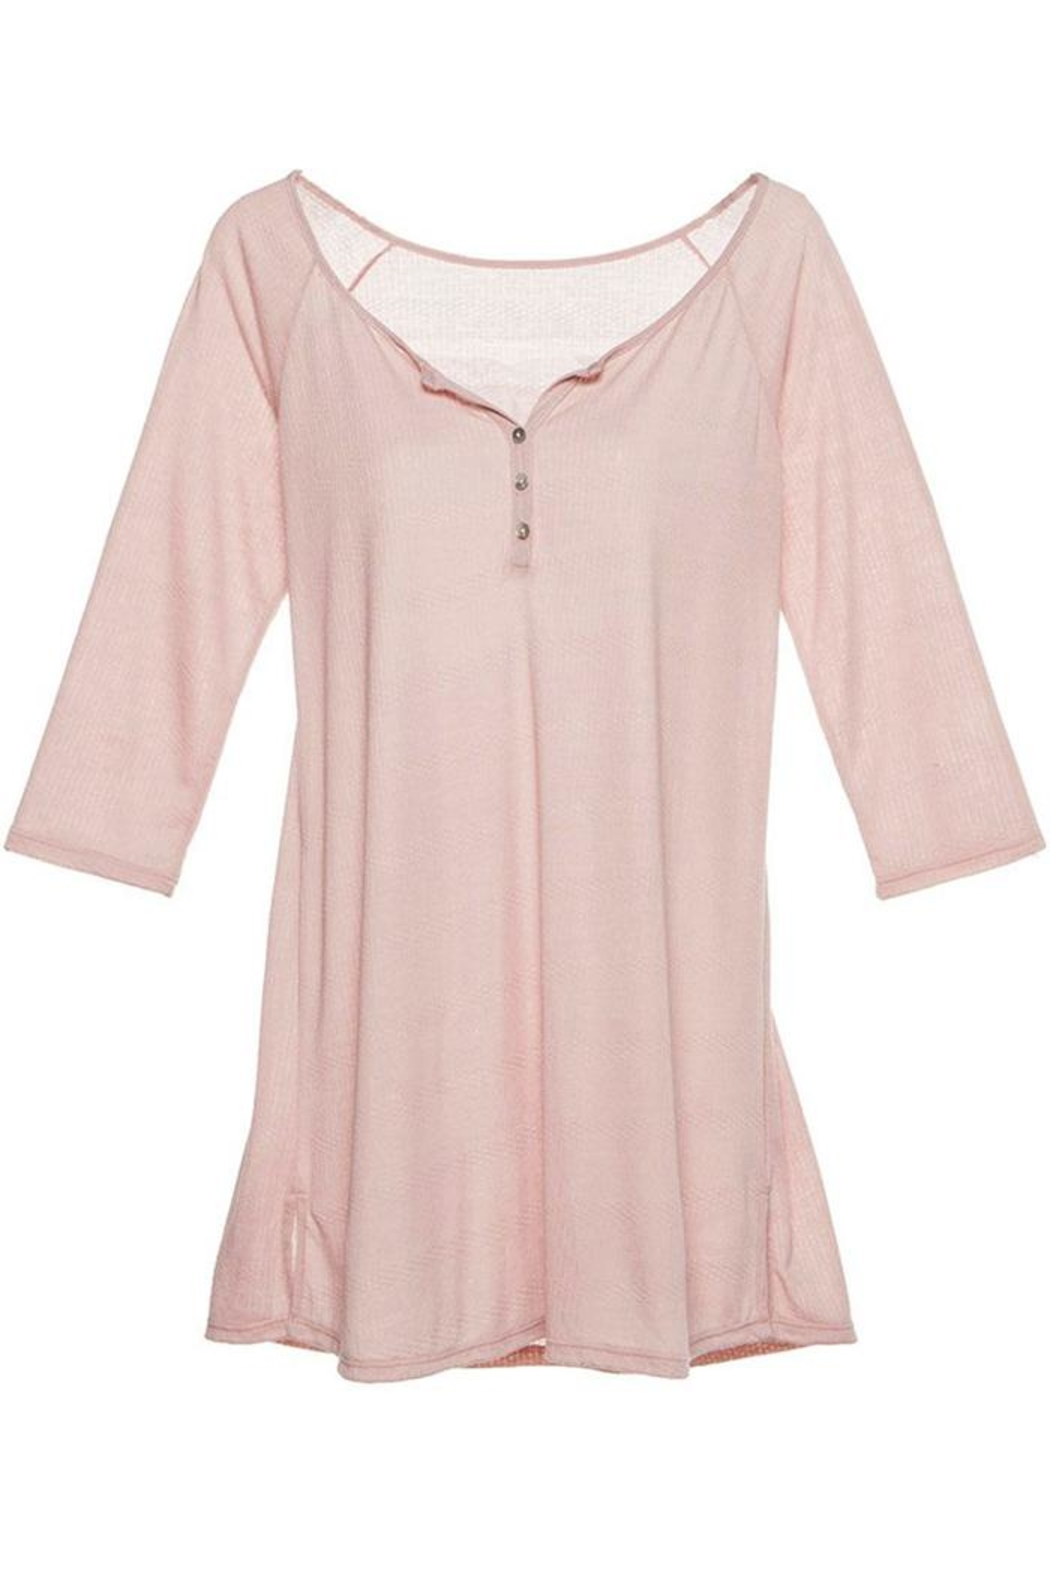 Eberjey Afternoon Delight Chemise - Side Cropped Image